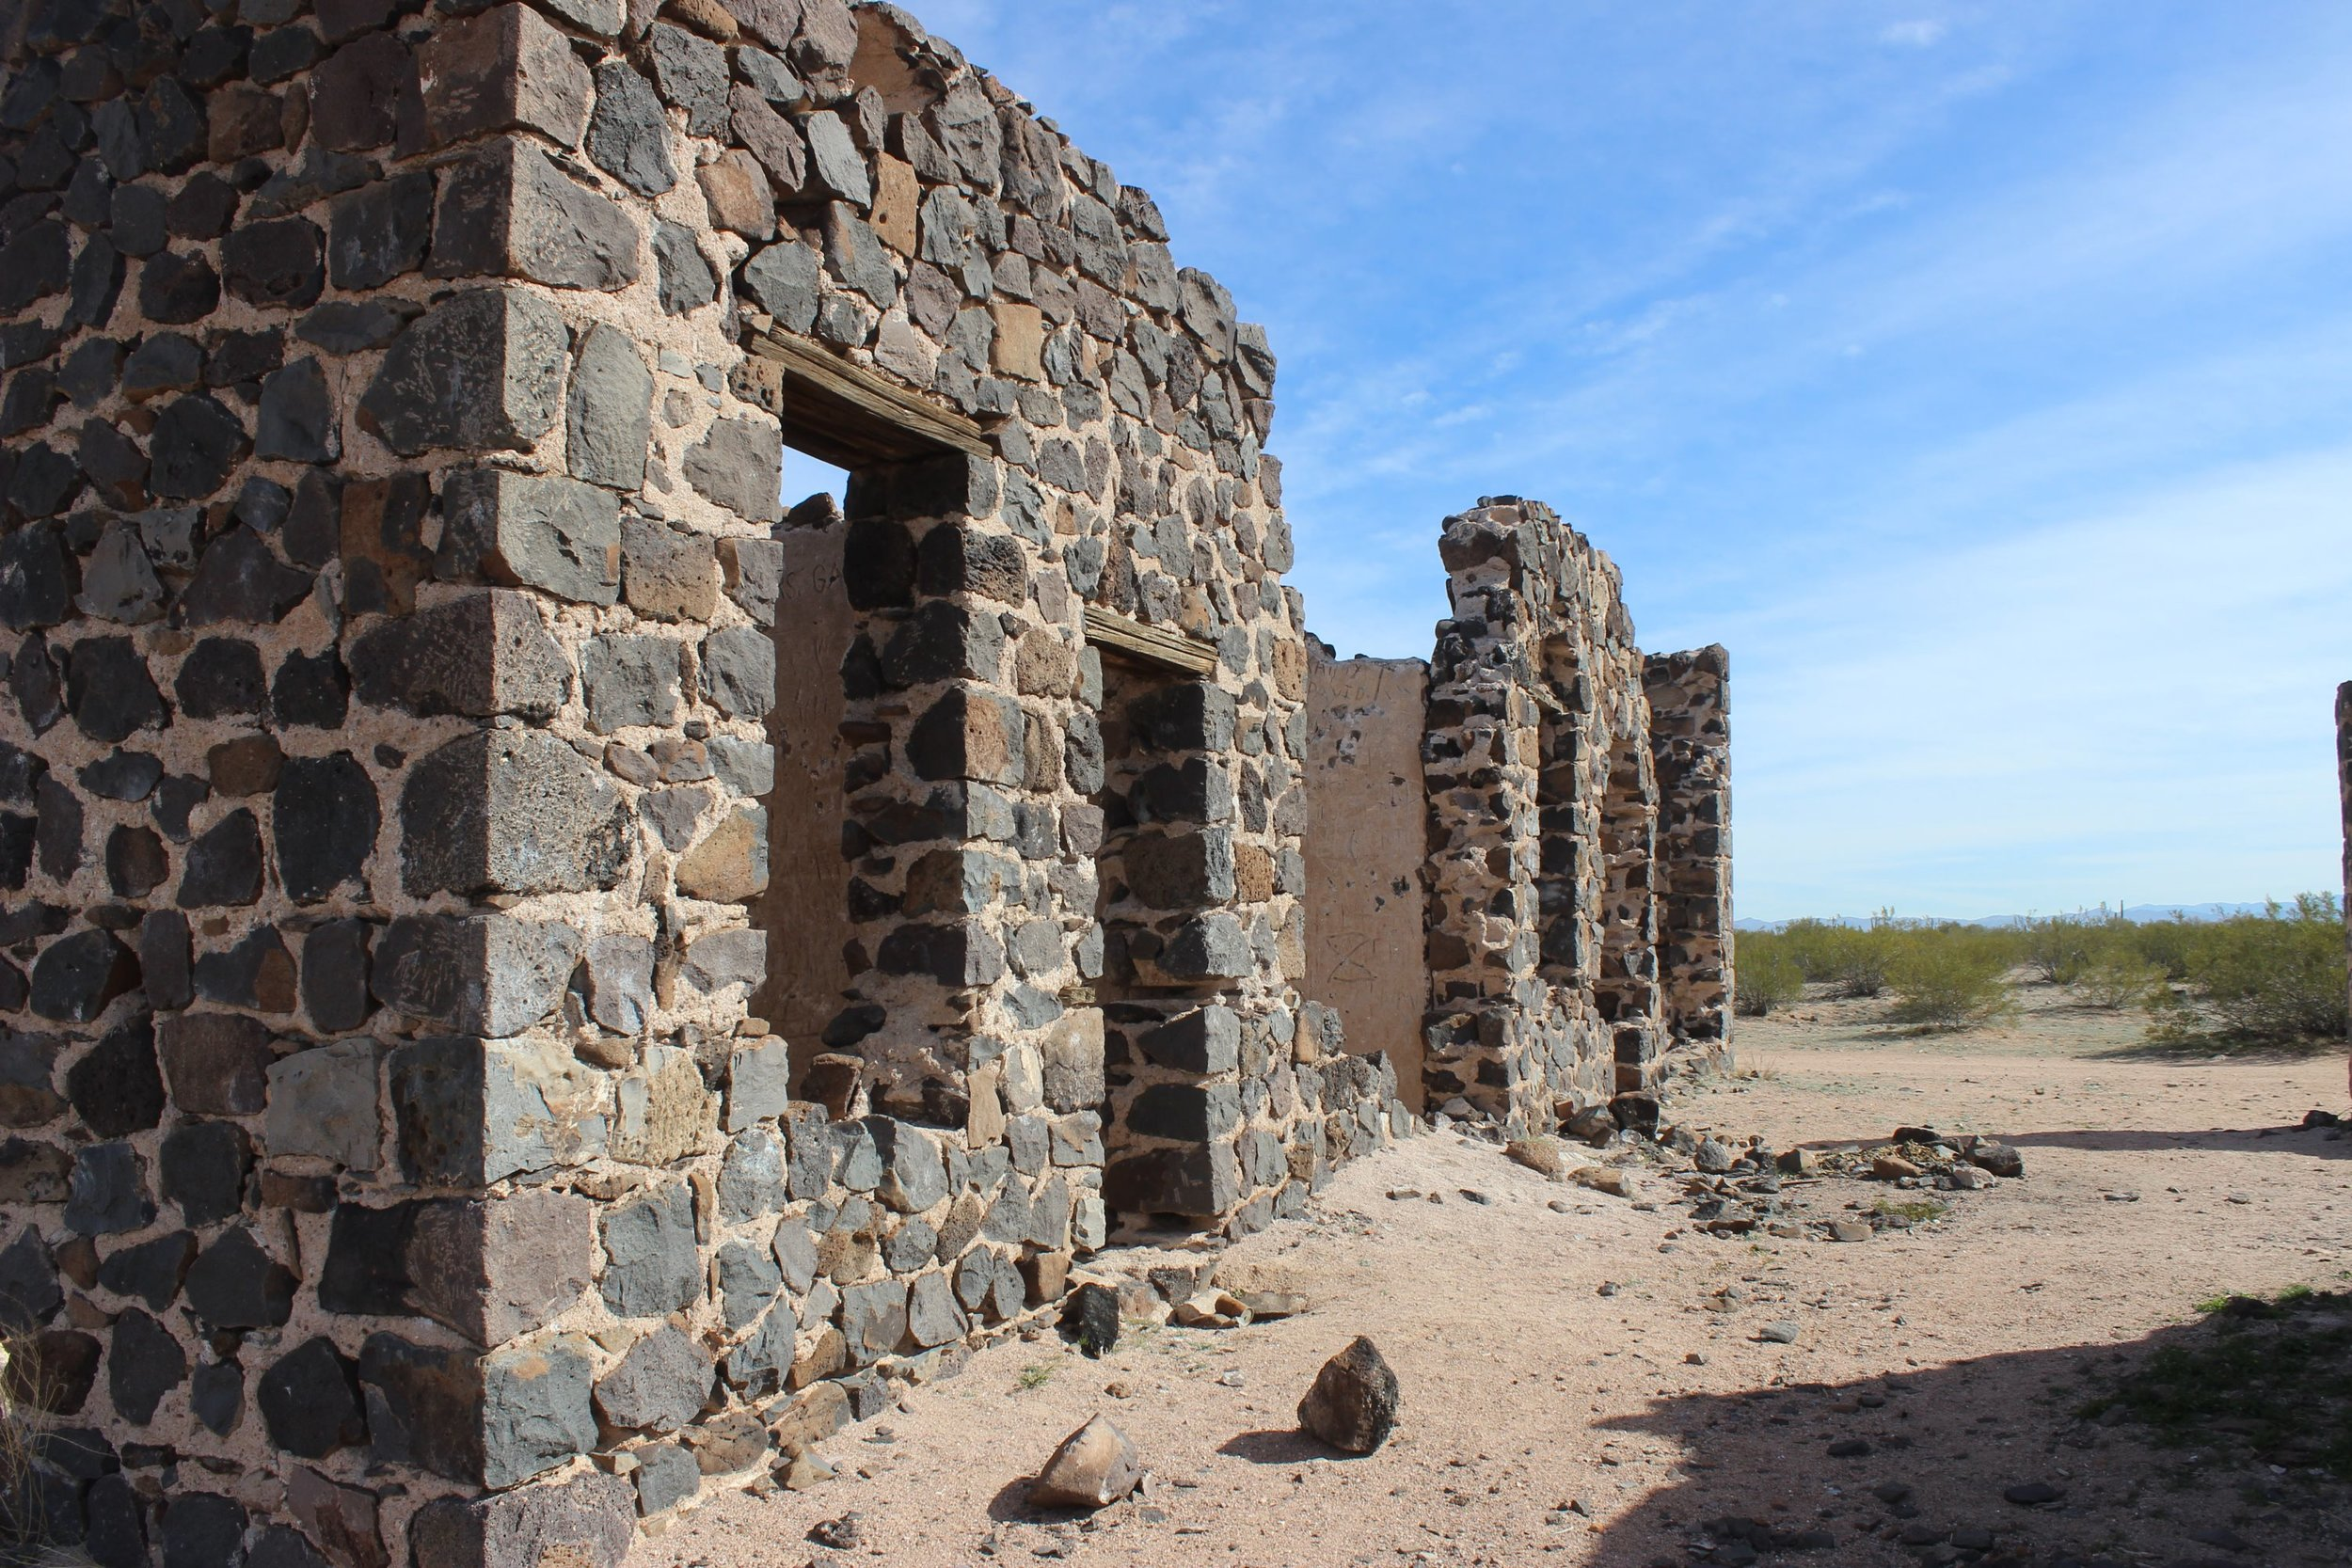 Ruins of the Hotel Rockland, east of the main townsite